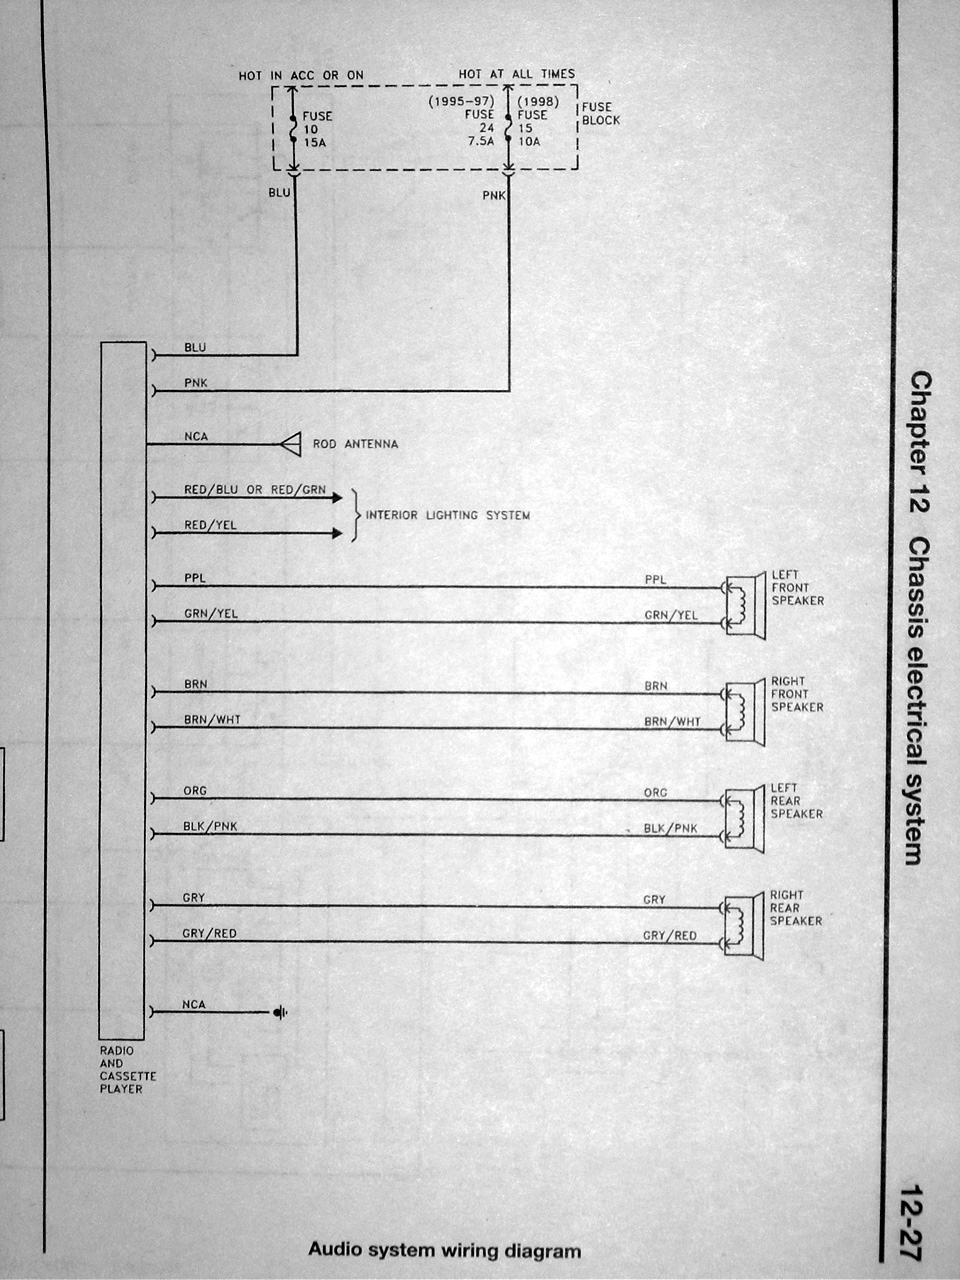 Wiring Diagram Thread *useful Info* Nissan Forum 1998 Nissan Sentra Engine  Diagram 2001 Nissan Sentra Radio Wiring Diagram Speaker